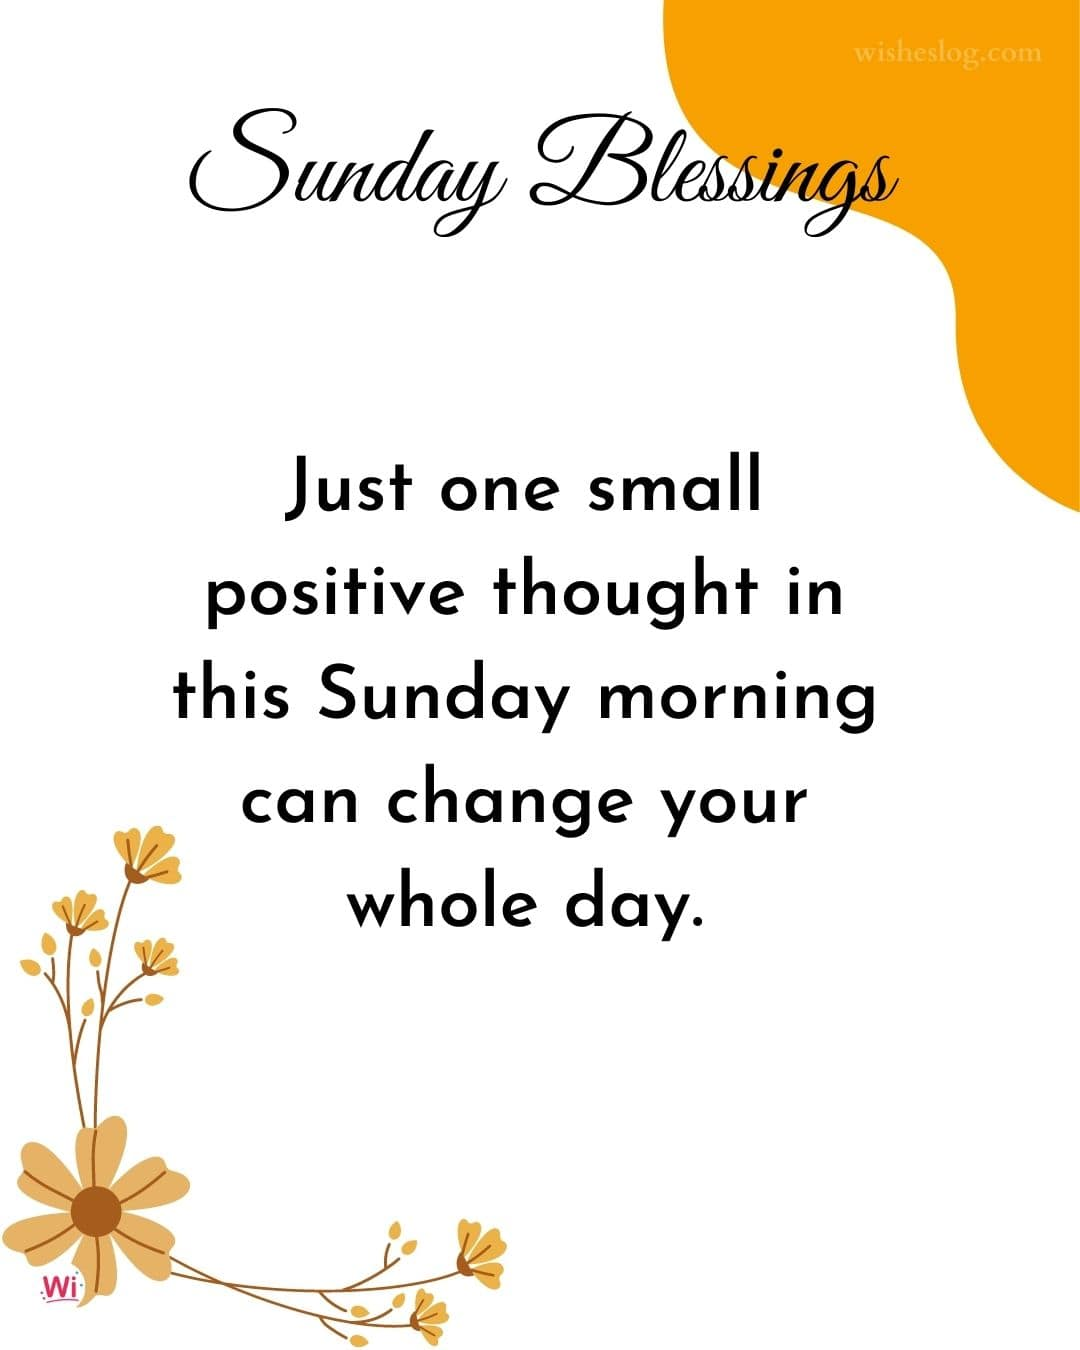 Good Morning Sunday Blessings Images Pictures   Wisheslog